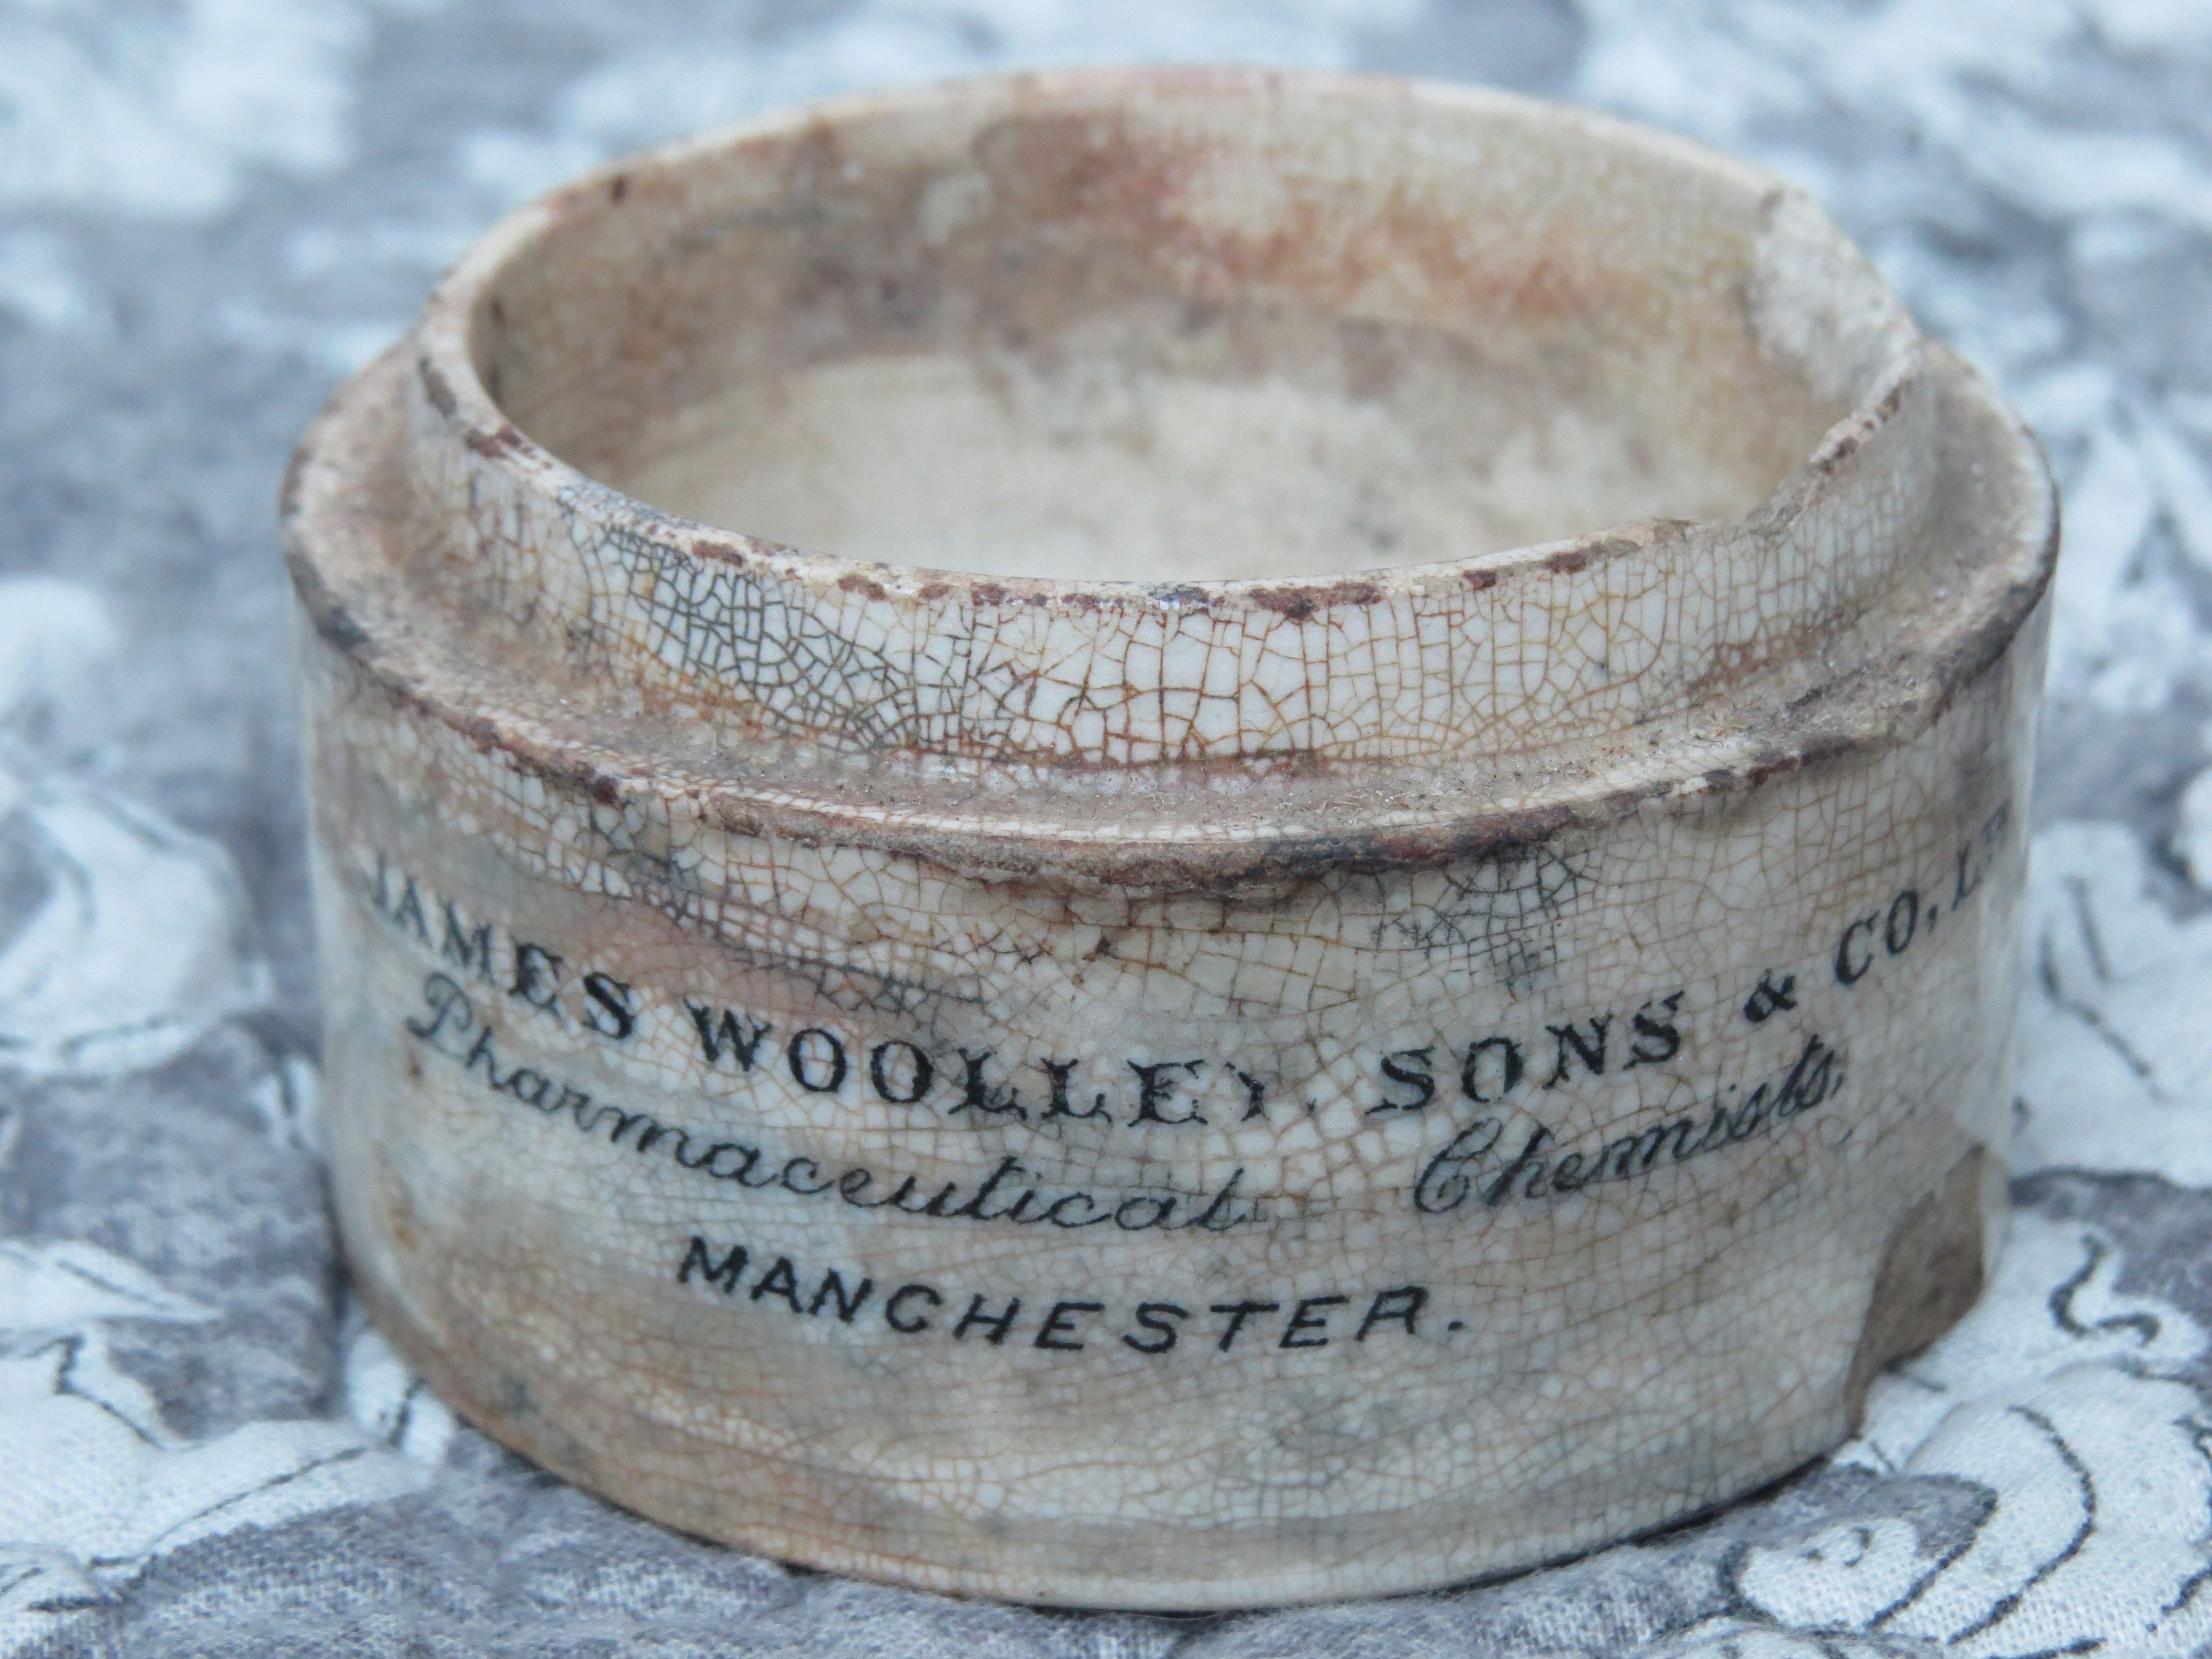 Antique pharmacist pot from James Woolley , Sons & co LtD Manchester , photography by Nico Loos